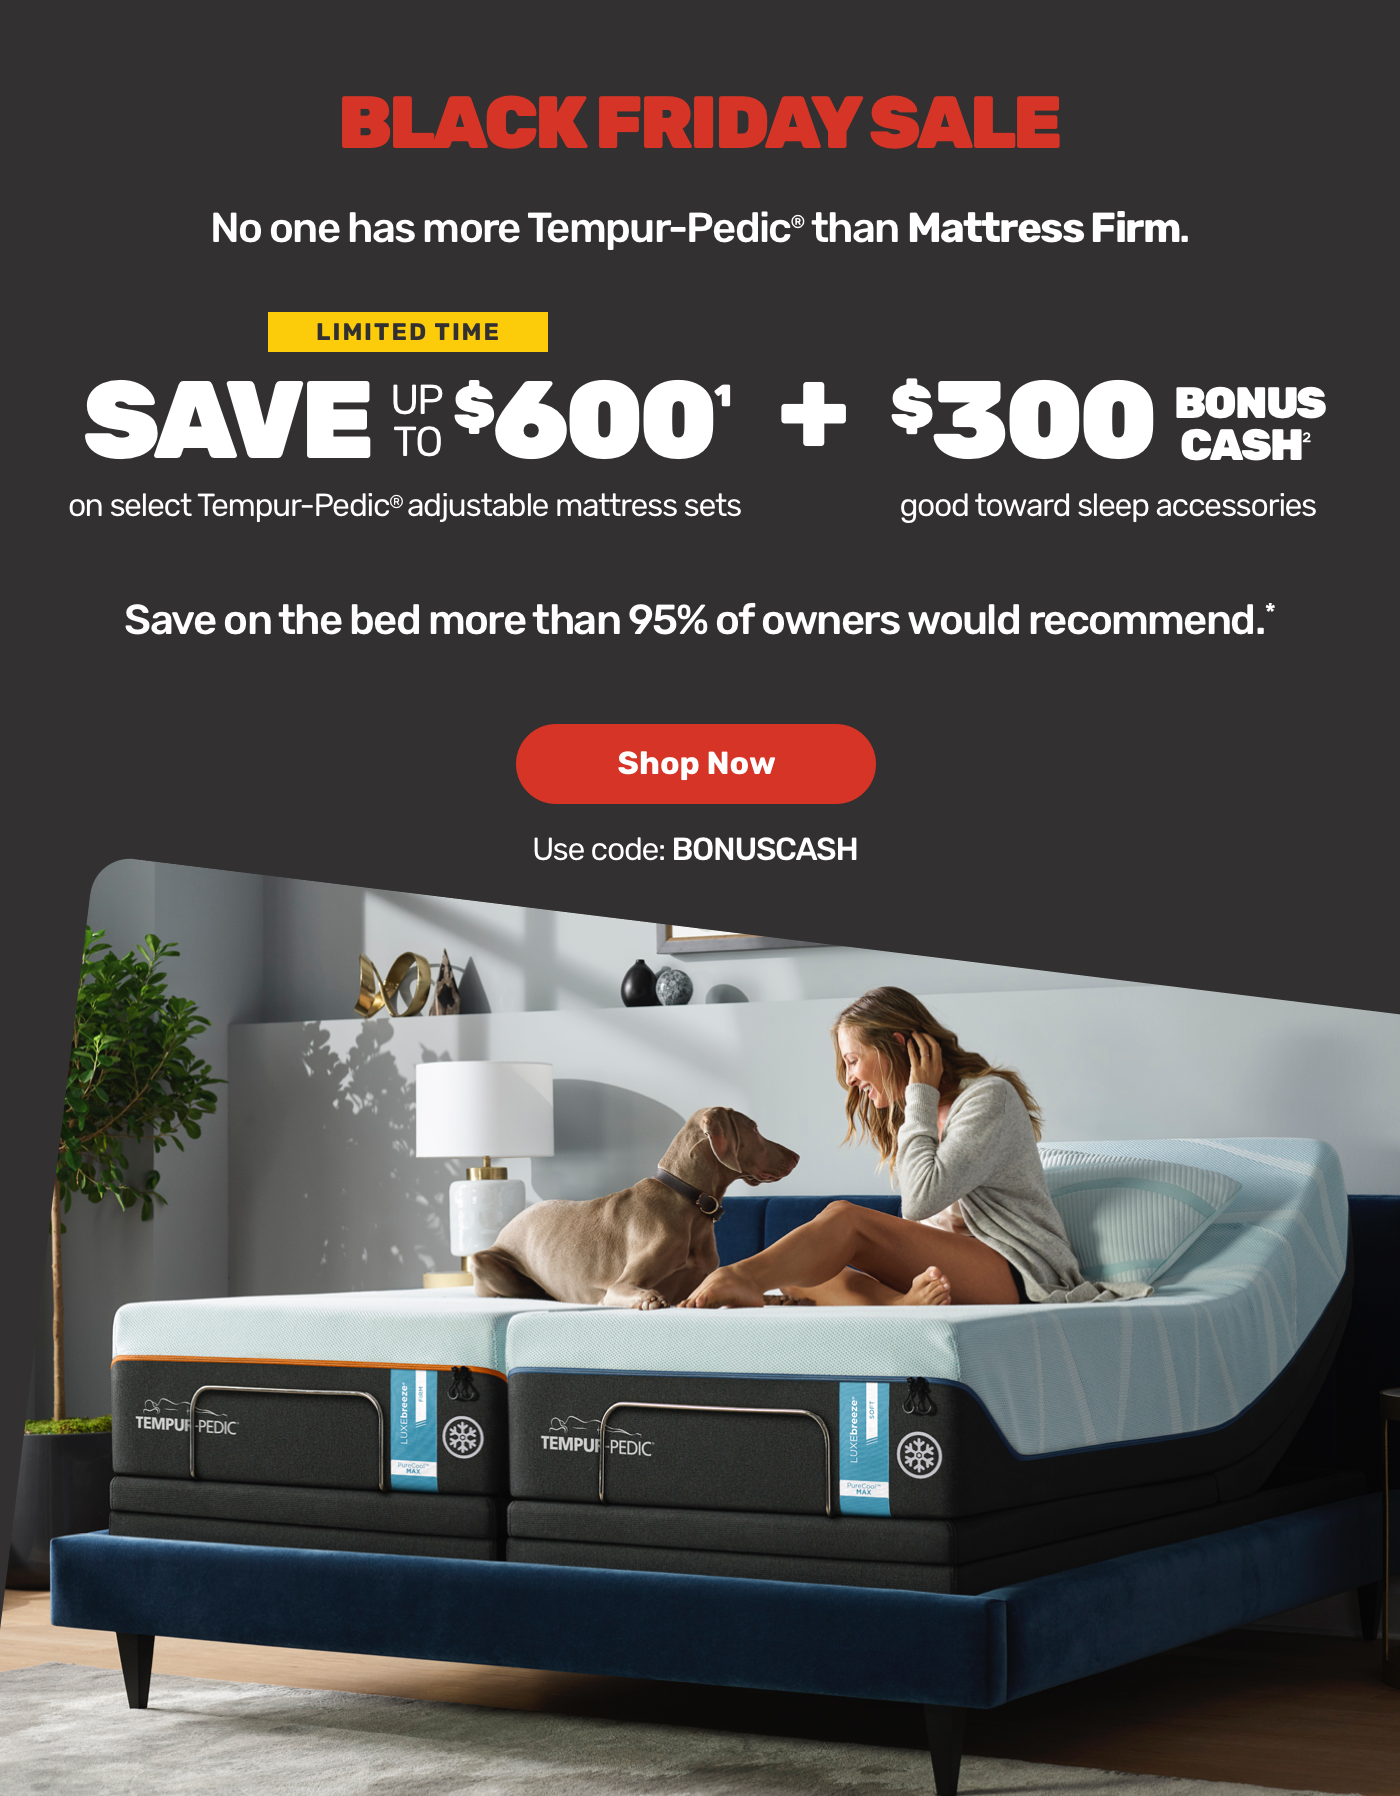 Mattress Firm This Black Friday Sale Save On Tempur Pedic